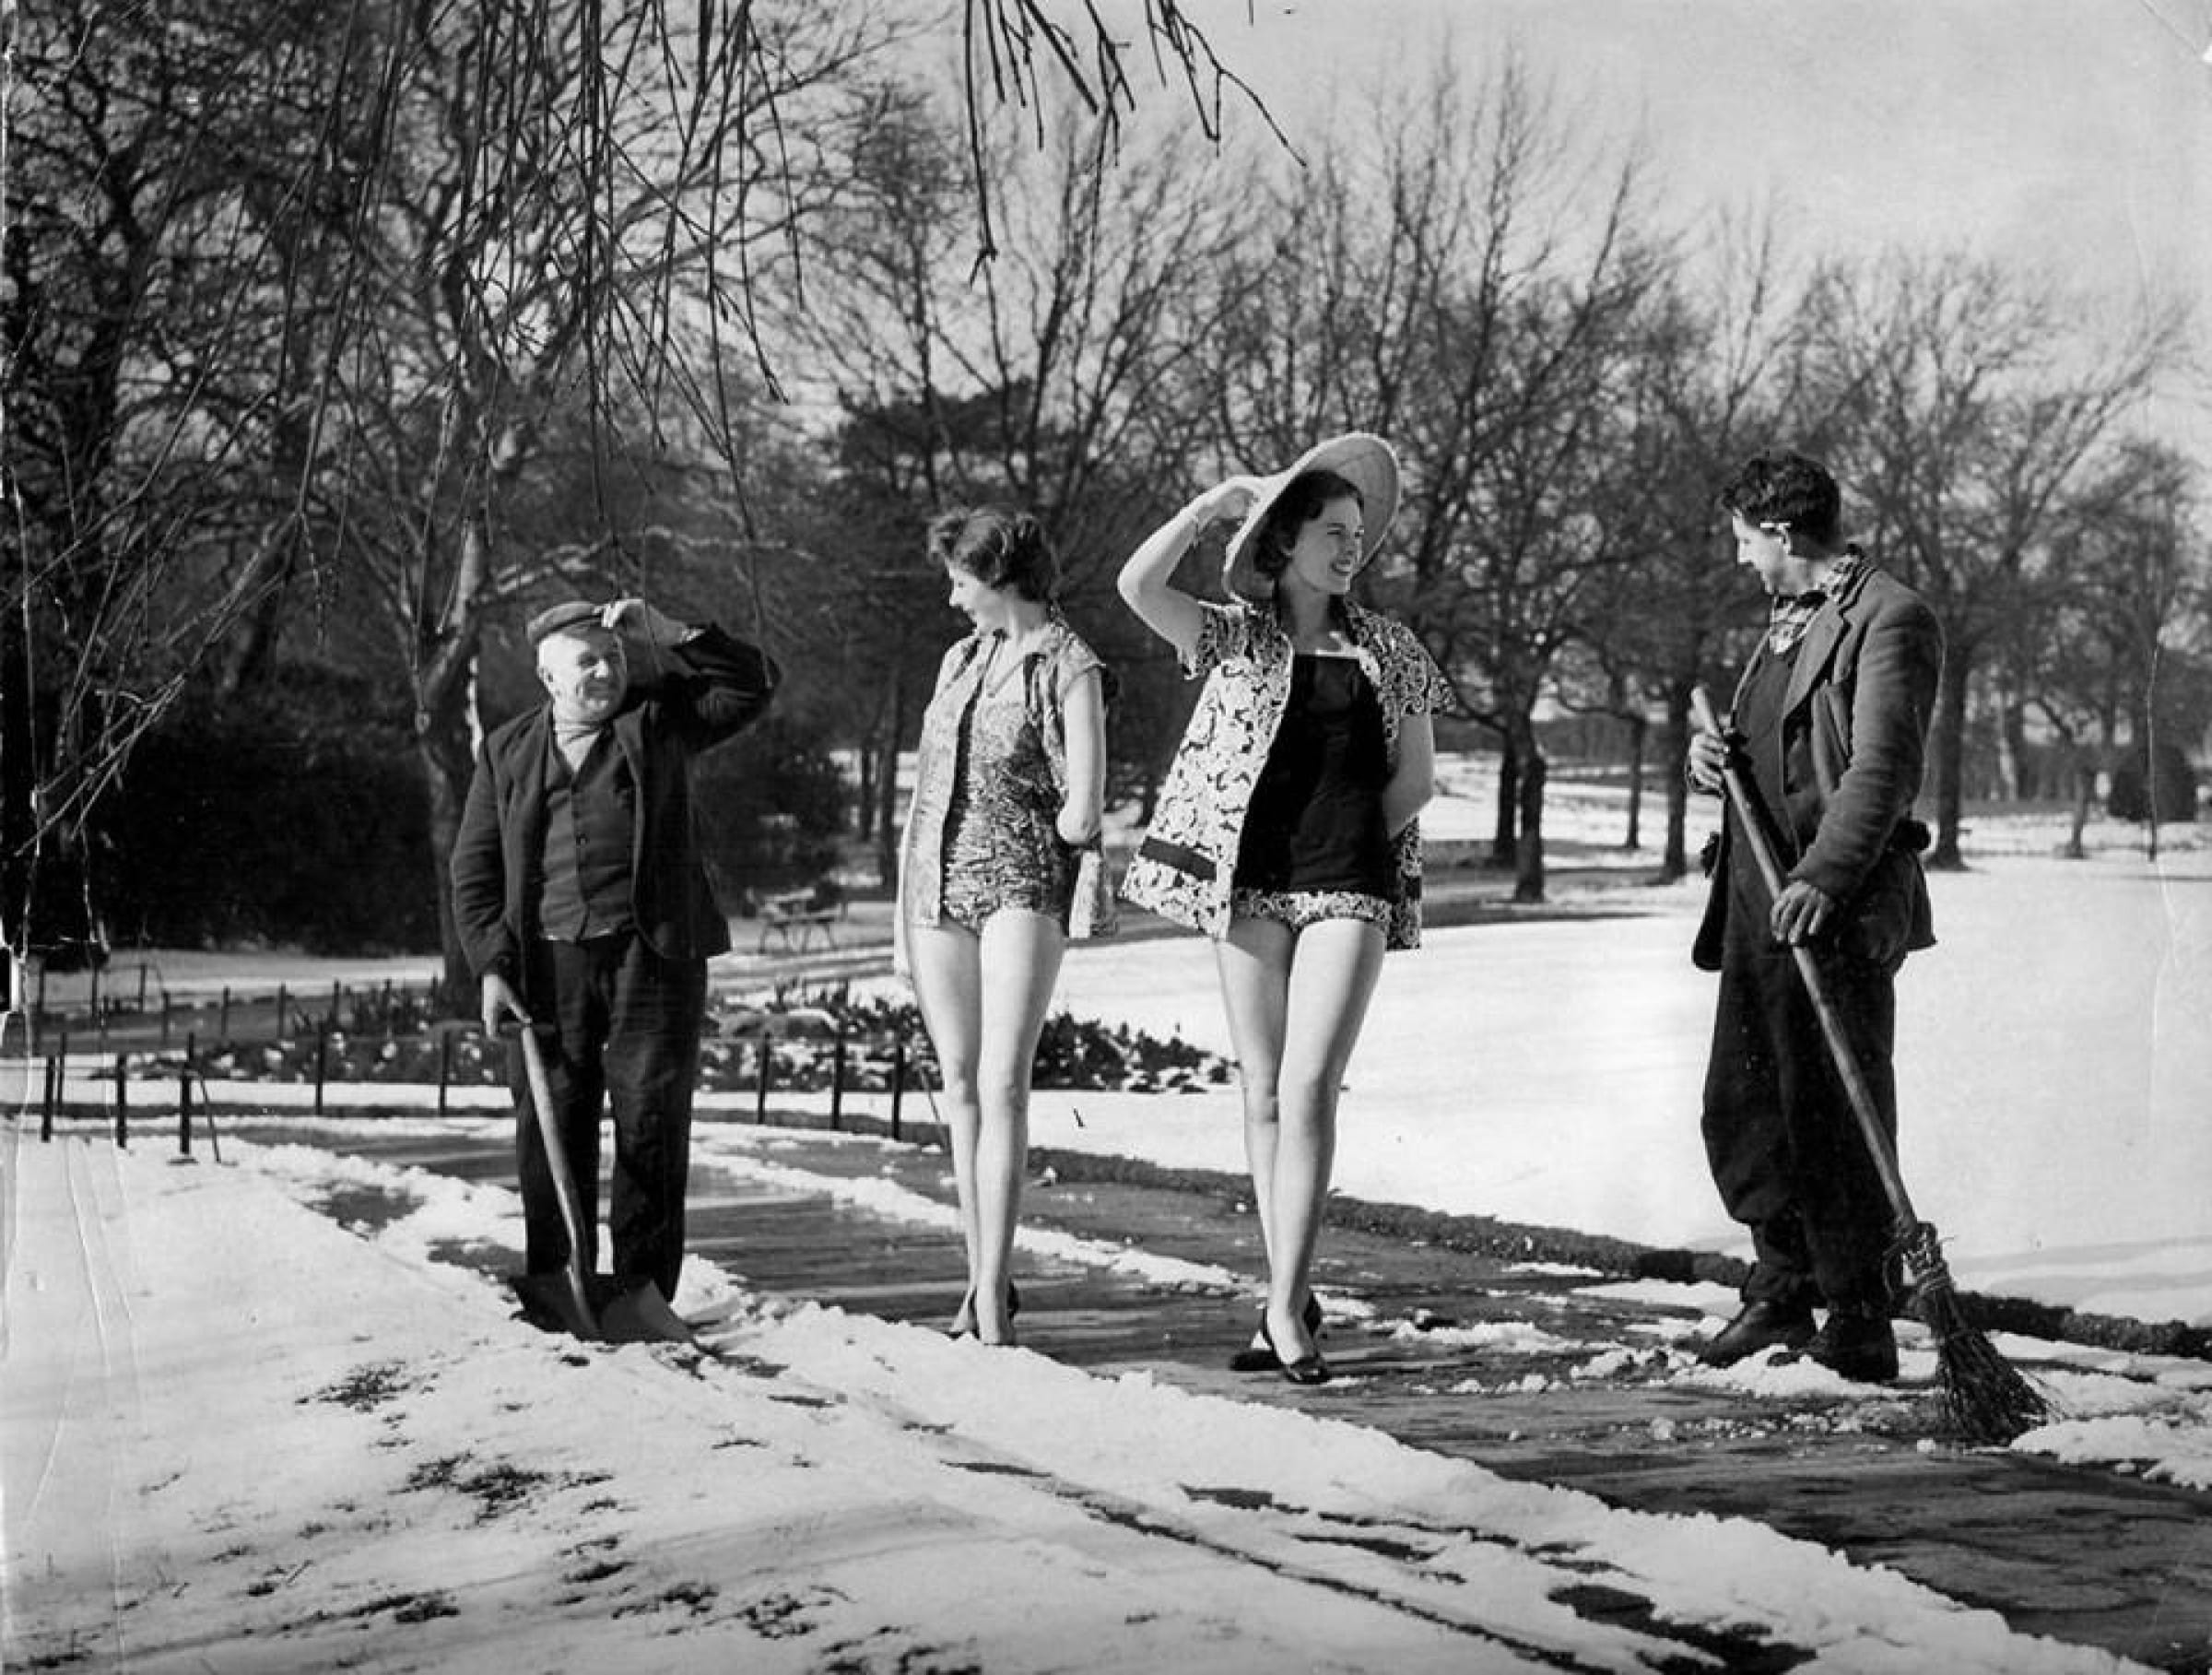 Cold front, warm welcome (Models and parkies, Botanic Gardens, 1958 (Newsquest Media Group))